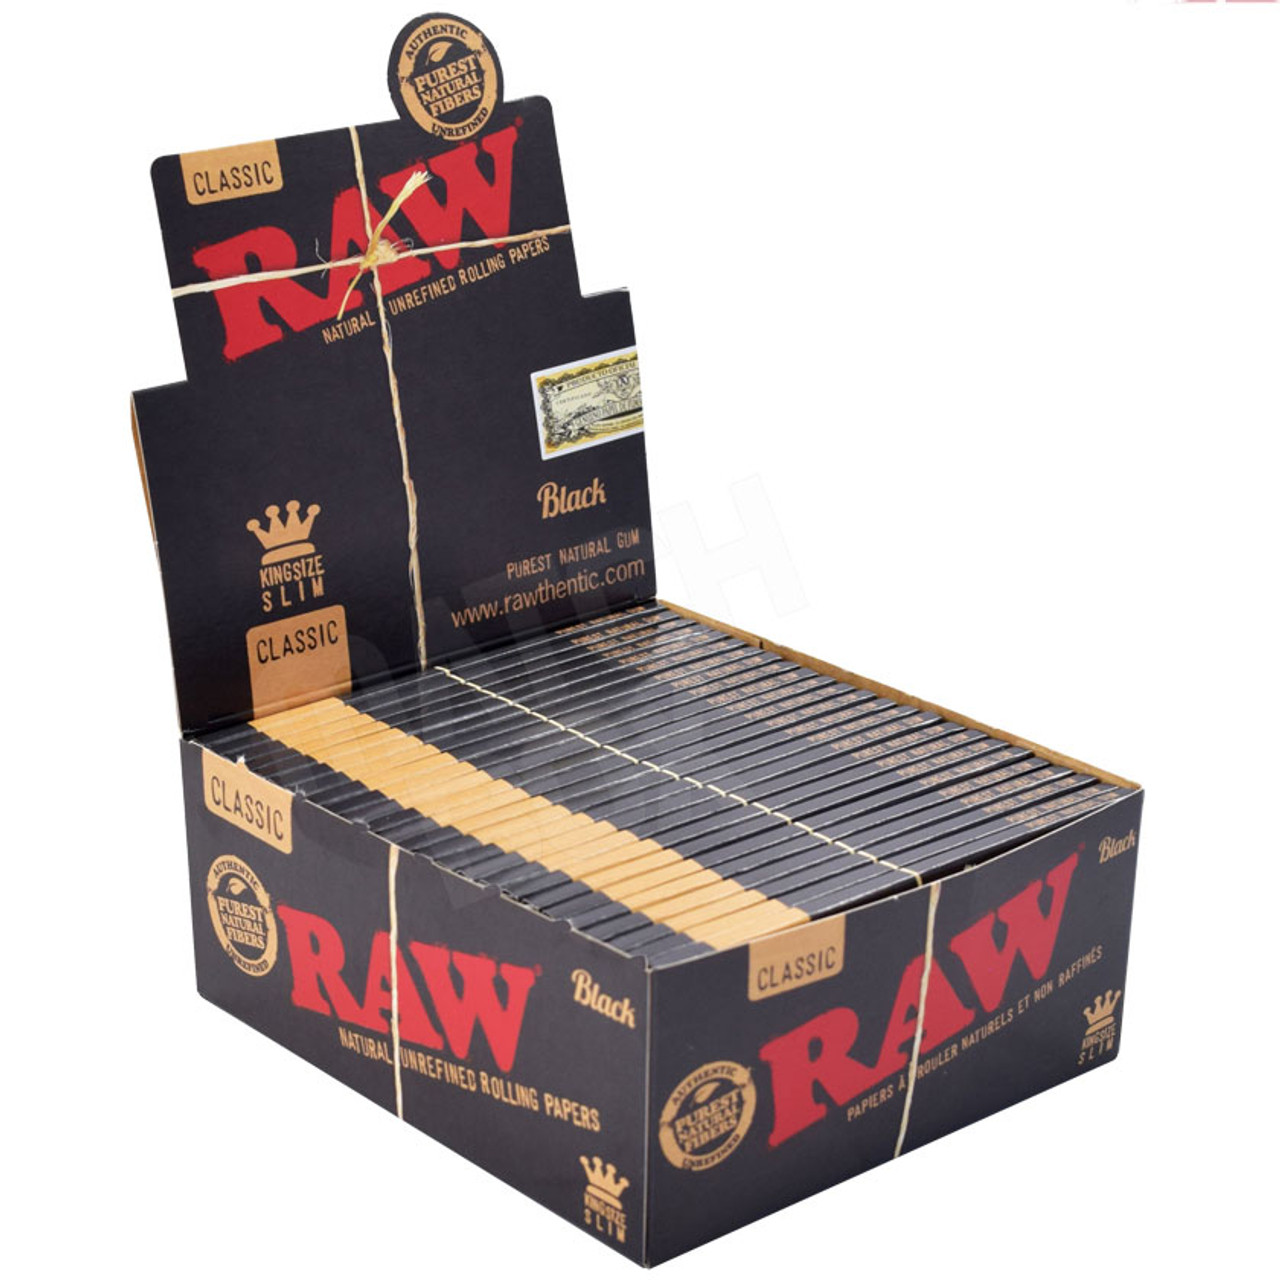 RAW Black King Size Slim Full Box